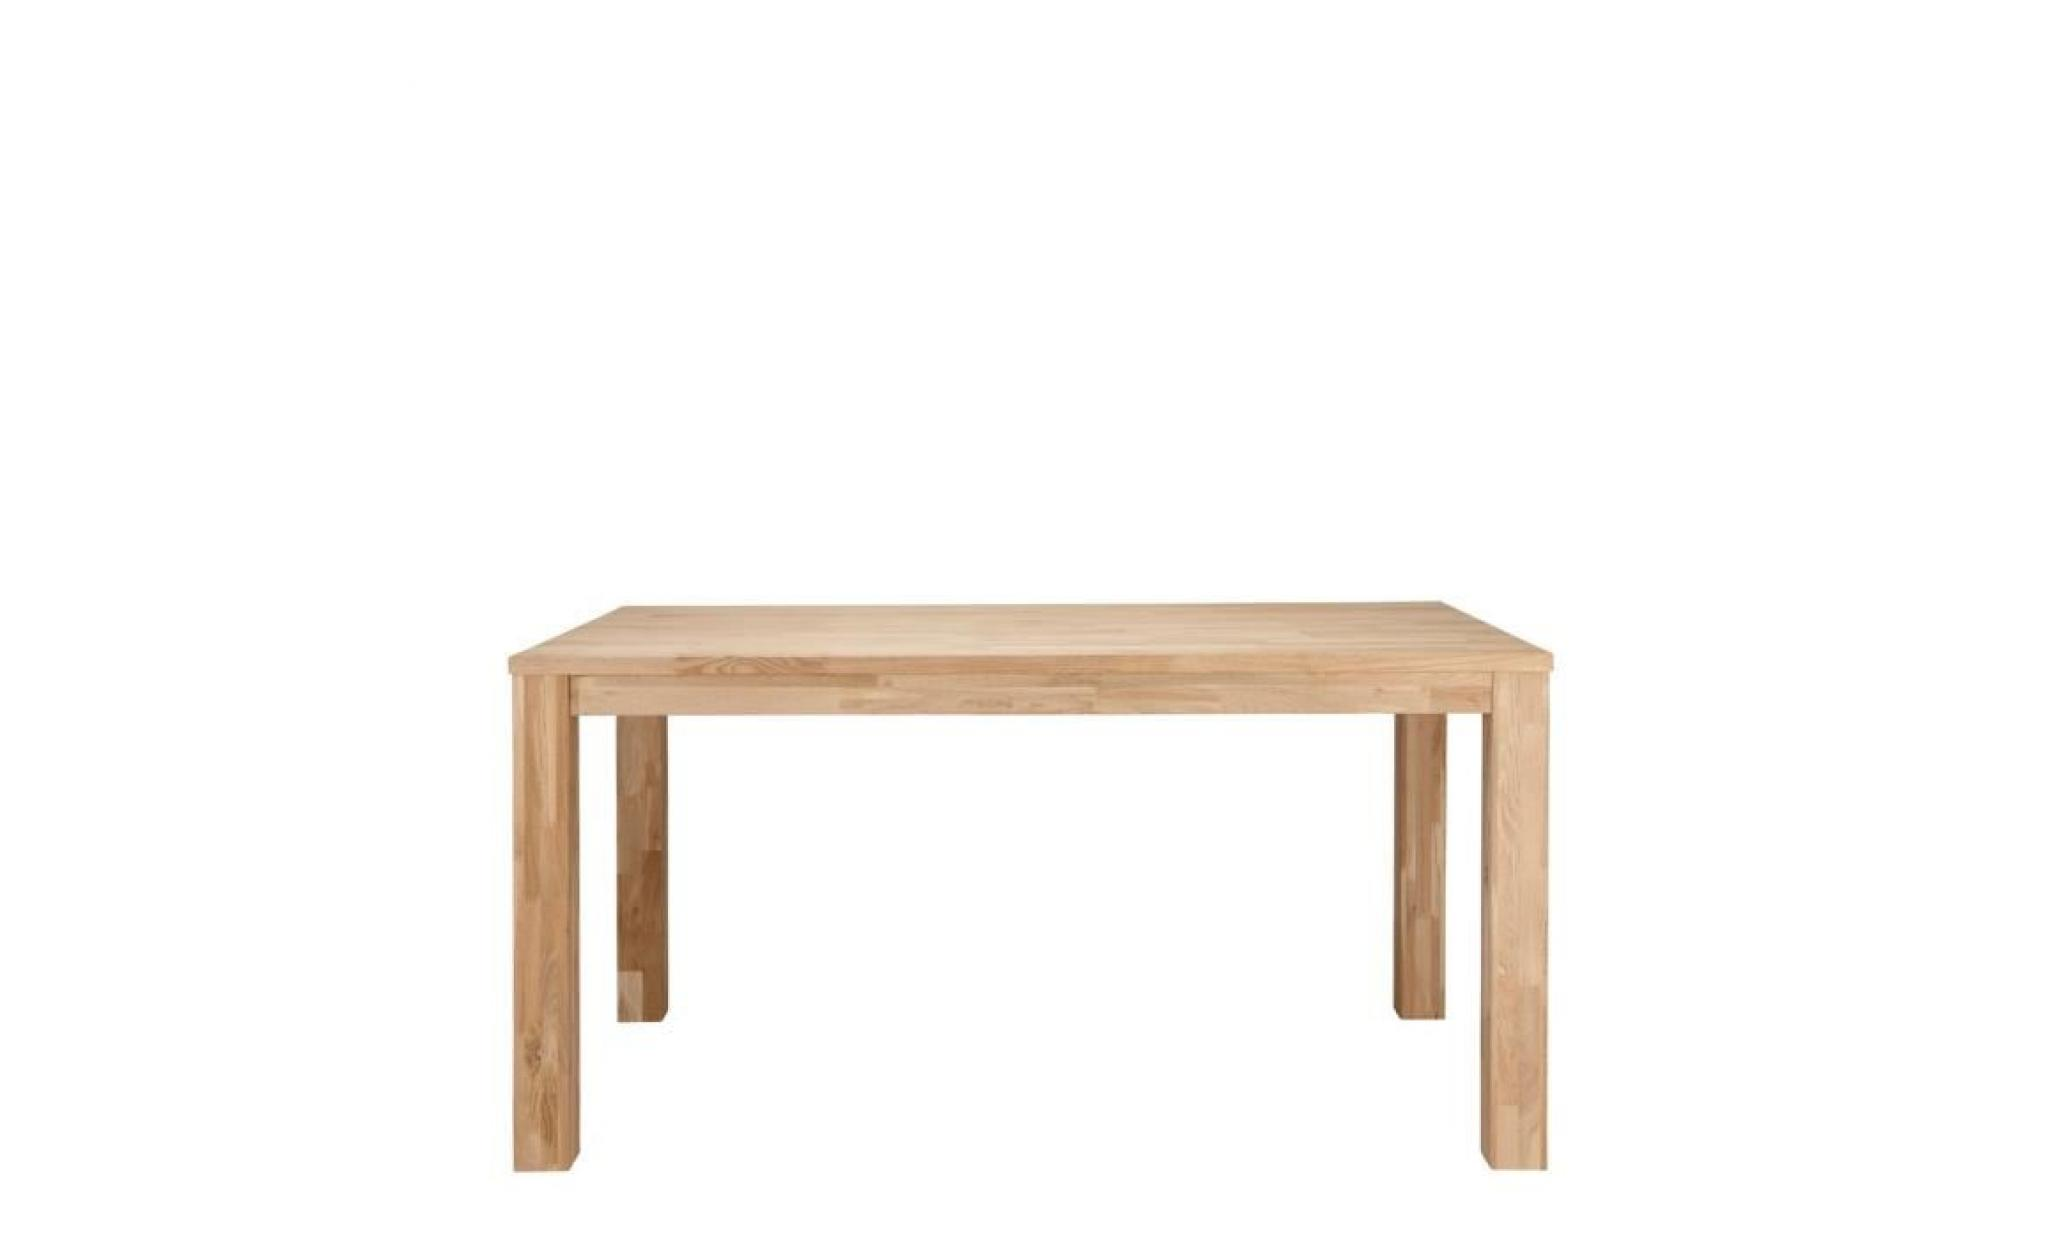 Table manger en ch ne massif brut dutchwood d achat for Table en chene brut